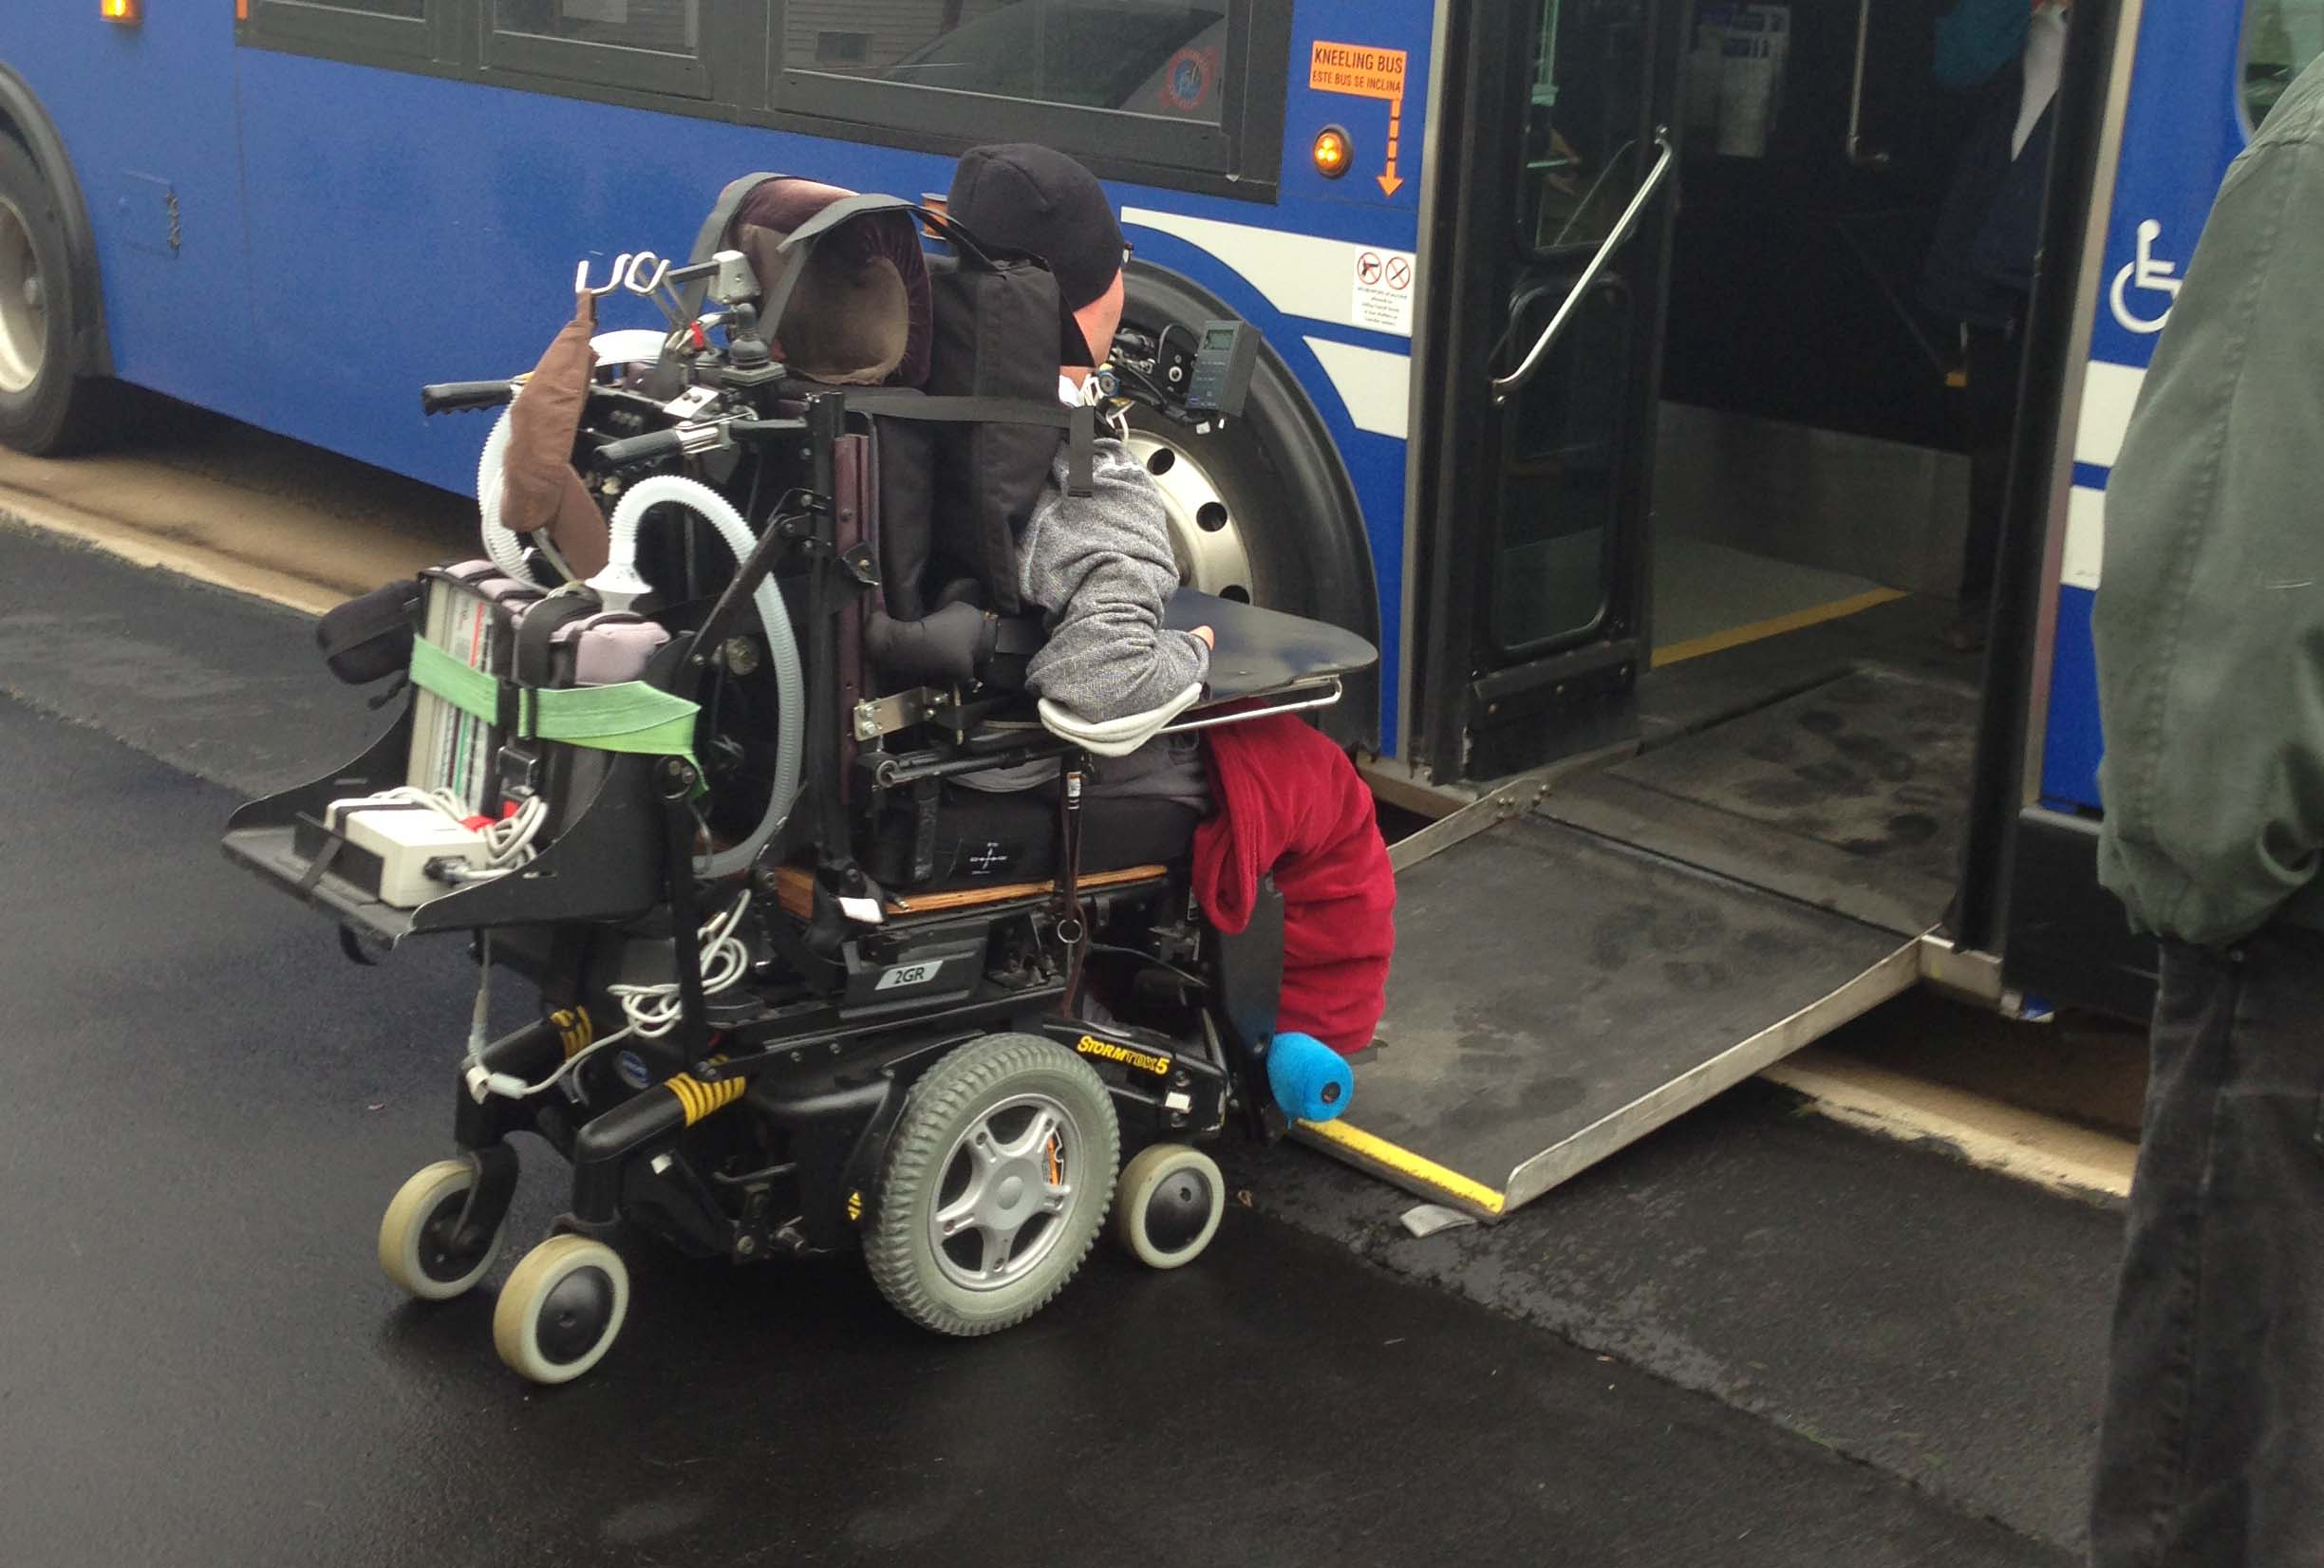 Wheelchair Entering Valley Transit Bus up gentle slope ramp